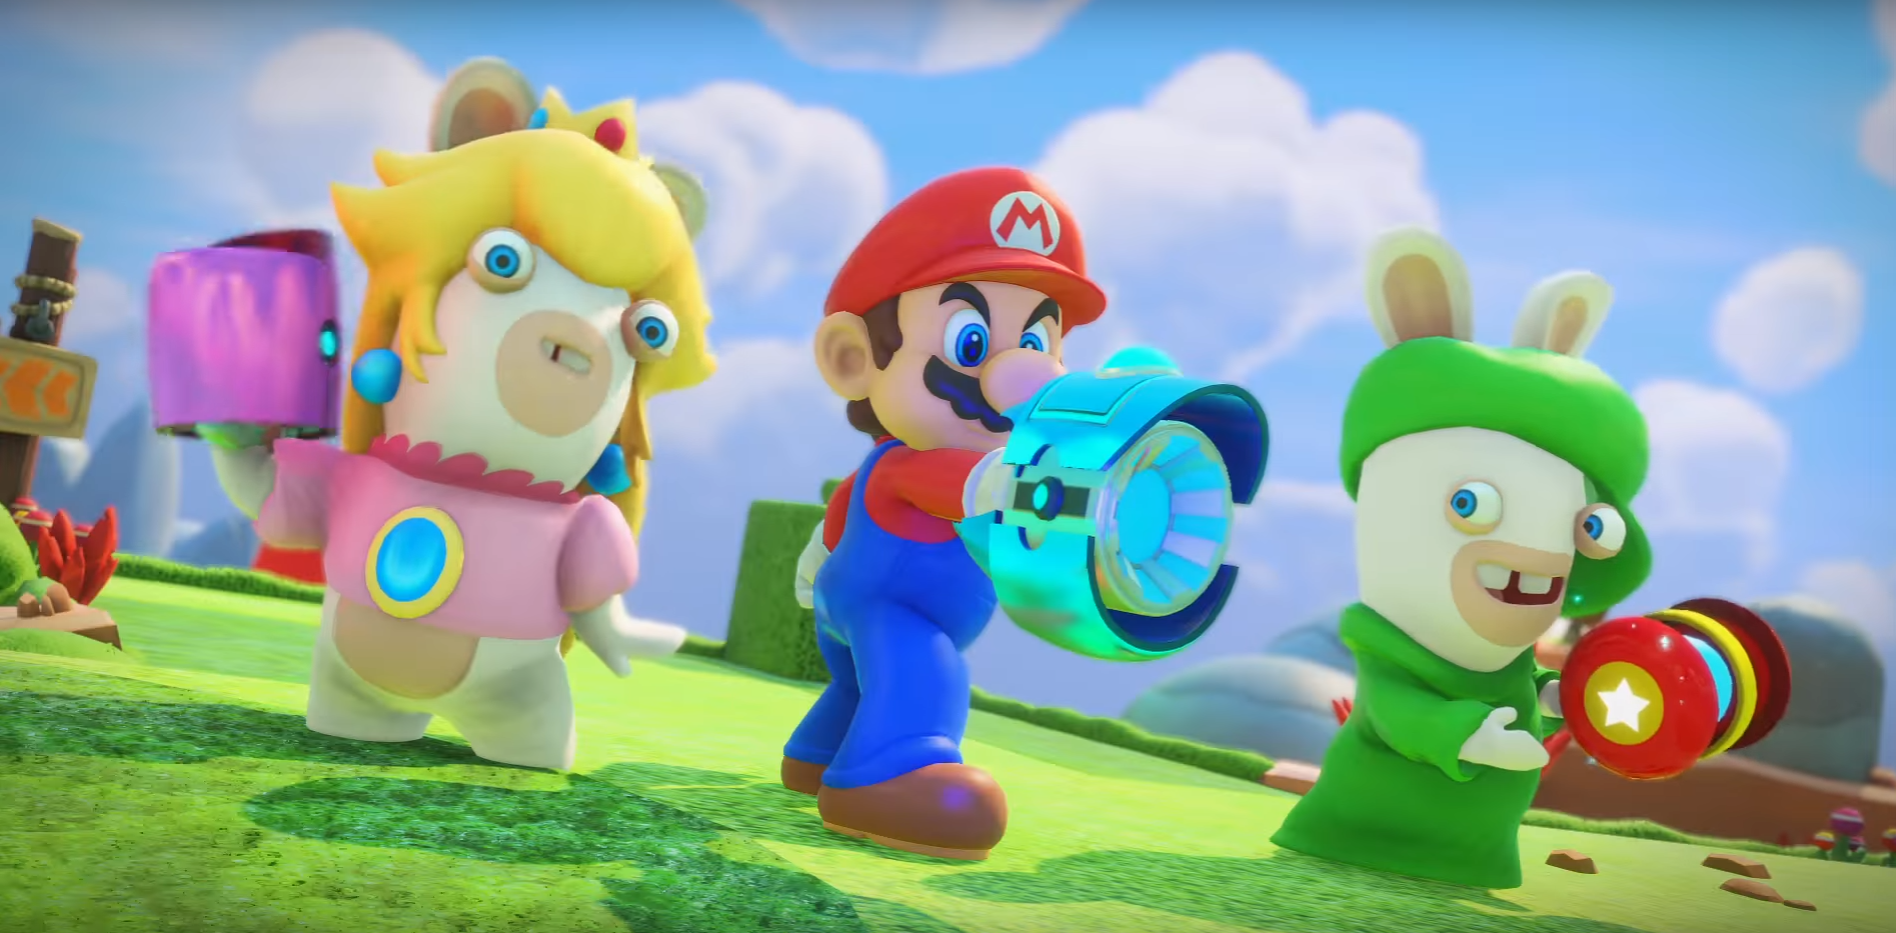 The Best Thing About Mario + Rabbids Kingdom Battle Are The Details